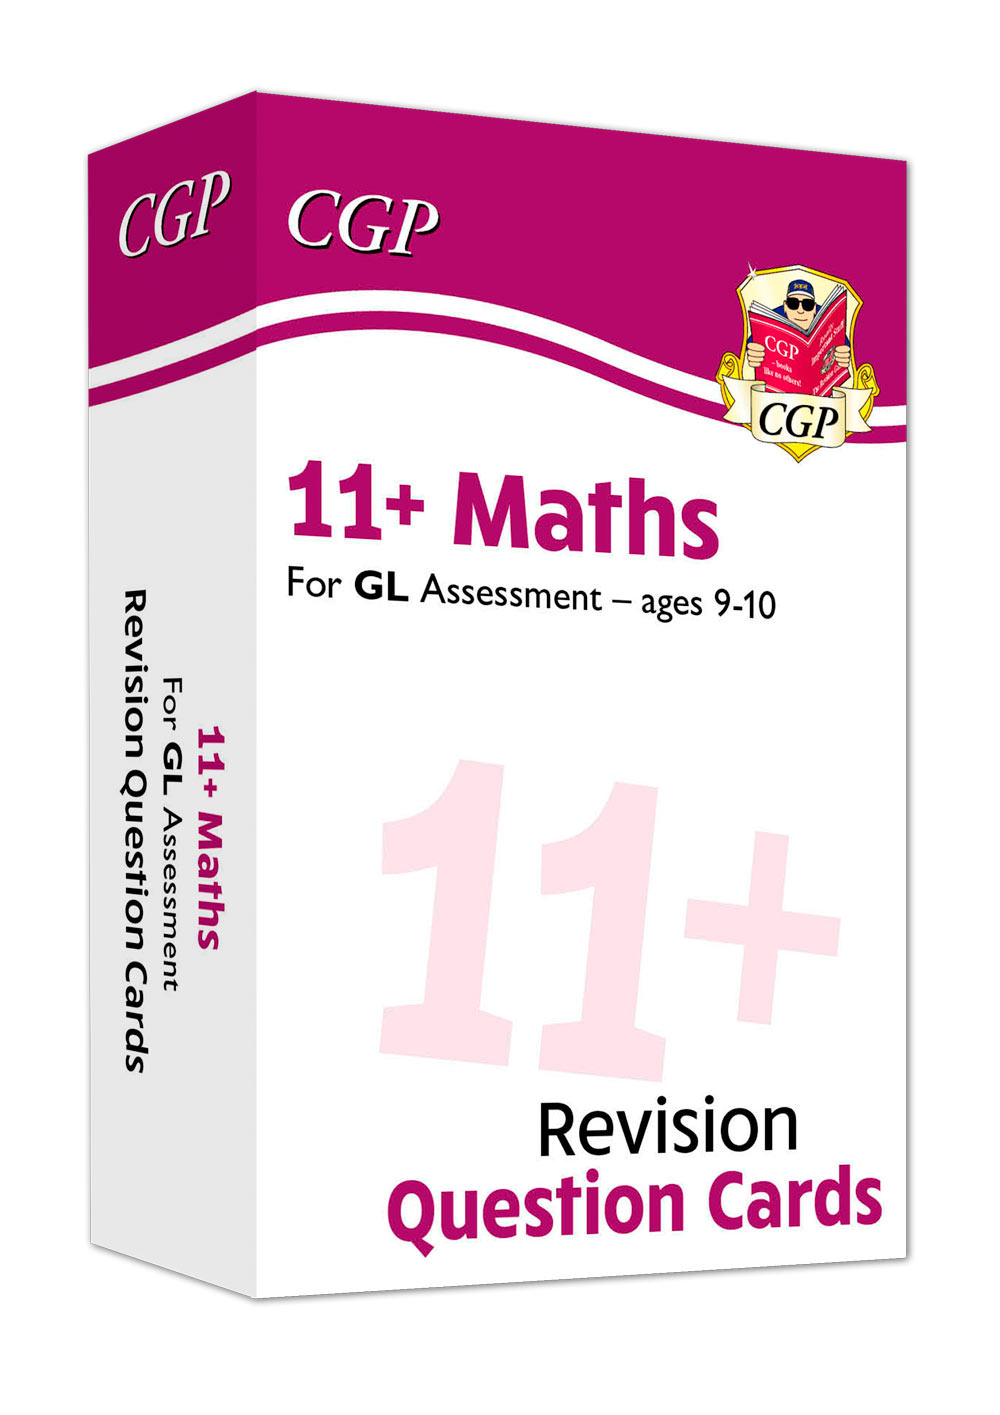 M5FE1 - New 11+ GL Revision Question Cards: Maths - Ages 9-10